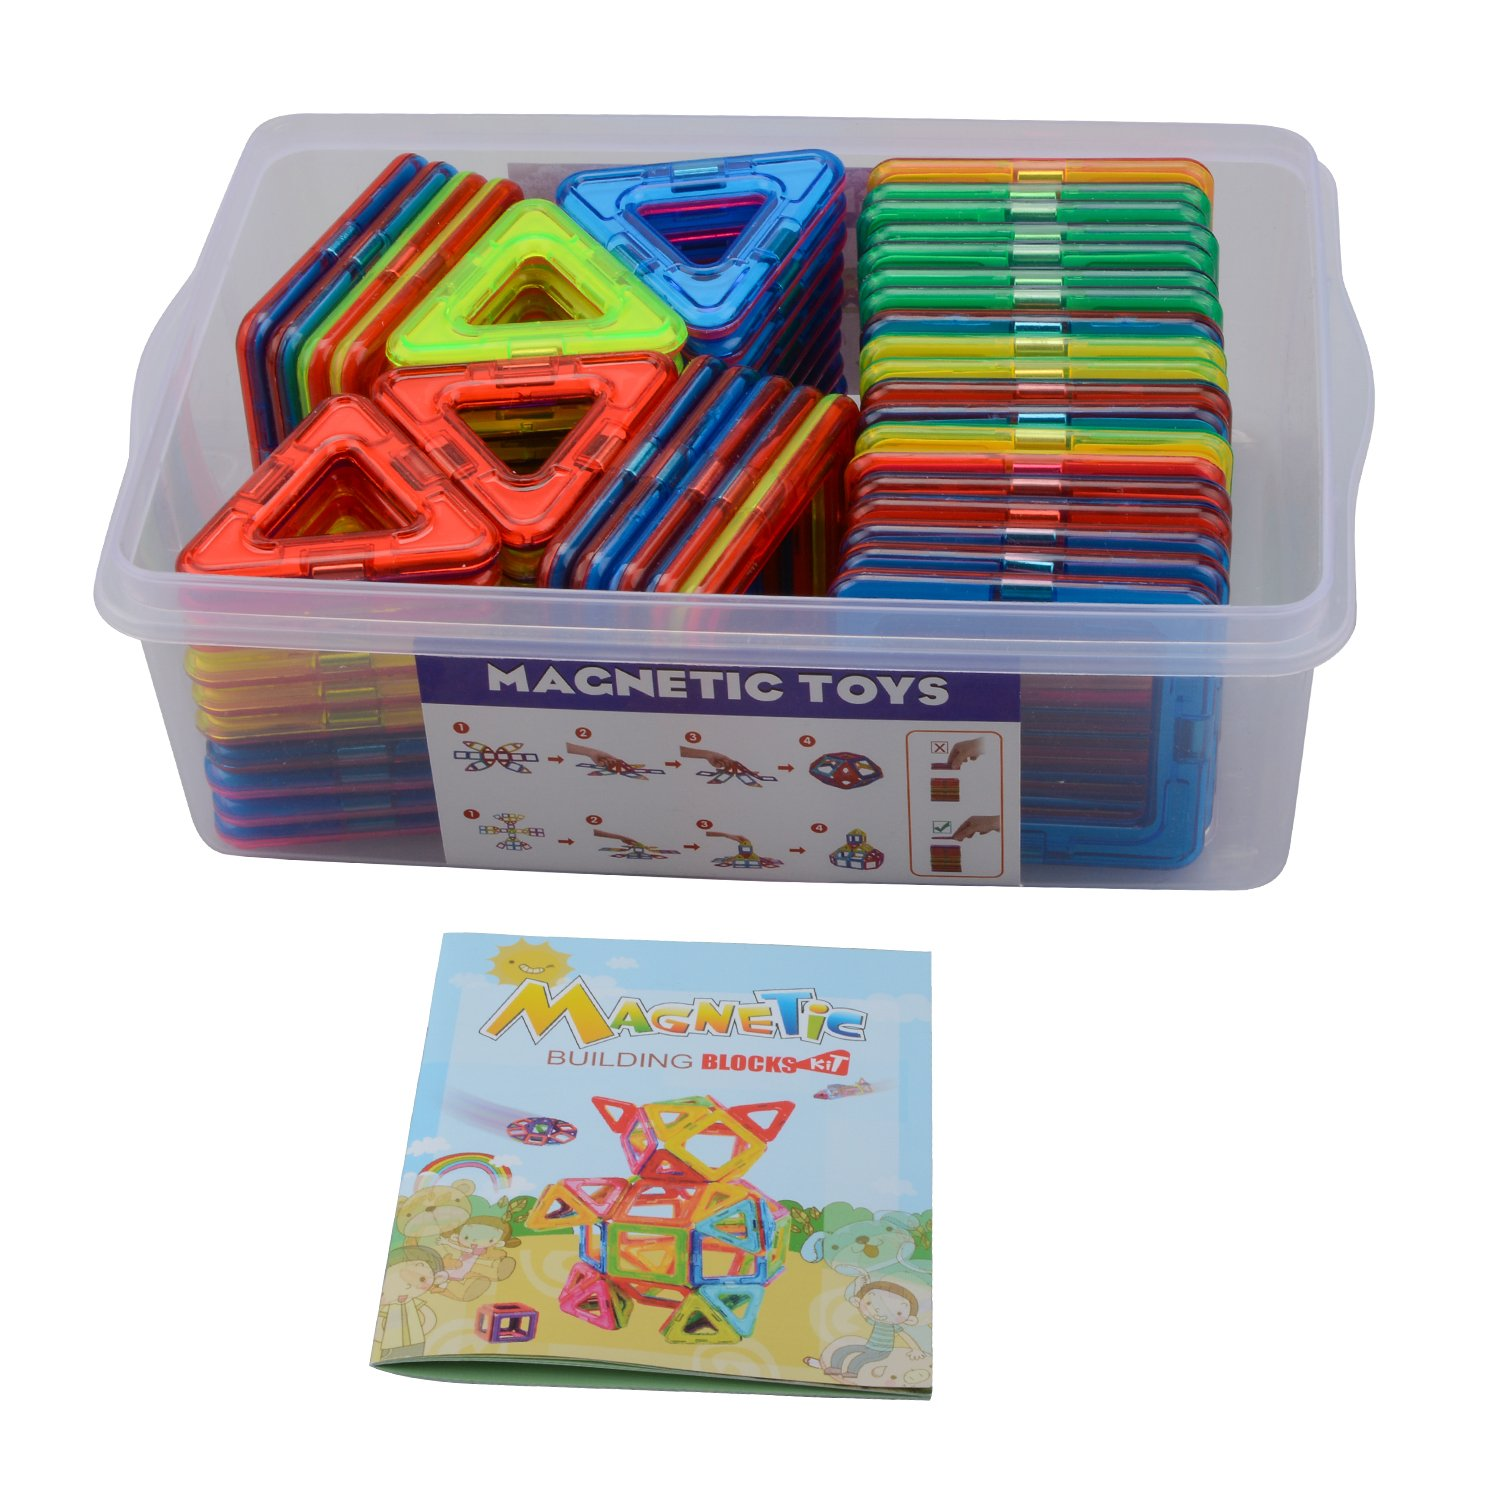 Large Size Magnetic Tiles Set, Akyhoo Magnetic Blocks Building Toys for Boys and Girls, 3D Building Blocks Construction Set, 68 Piece